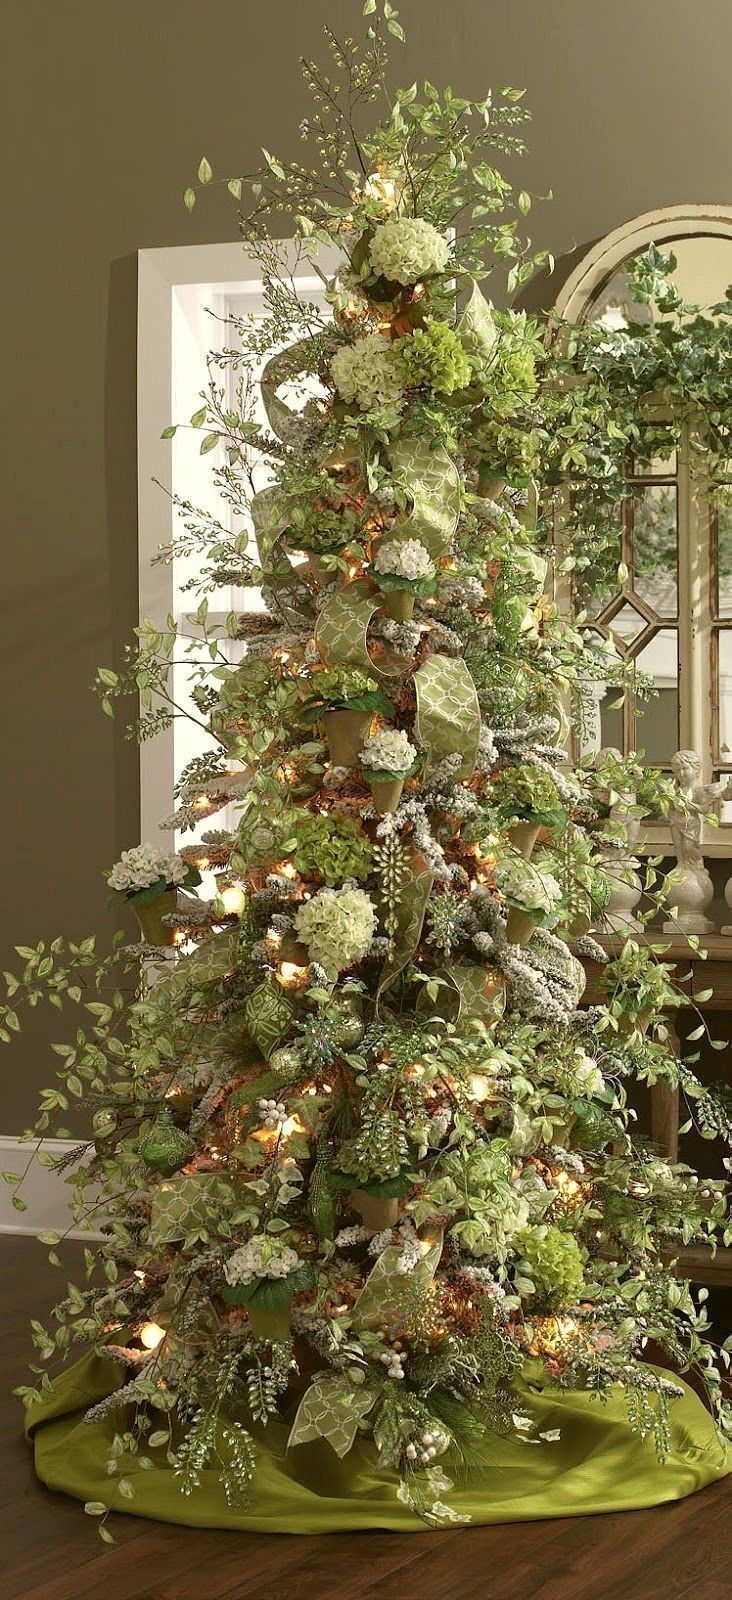 Laurel Bern Interiors List for 2013 of 22 Magical Christmas Trees